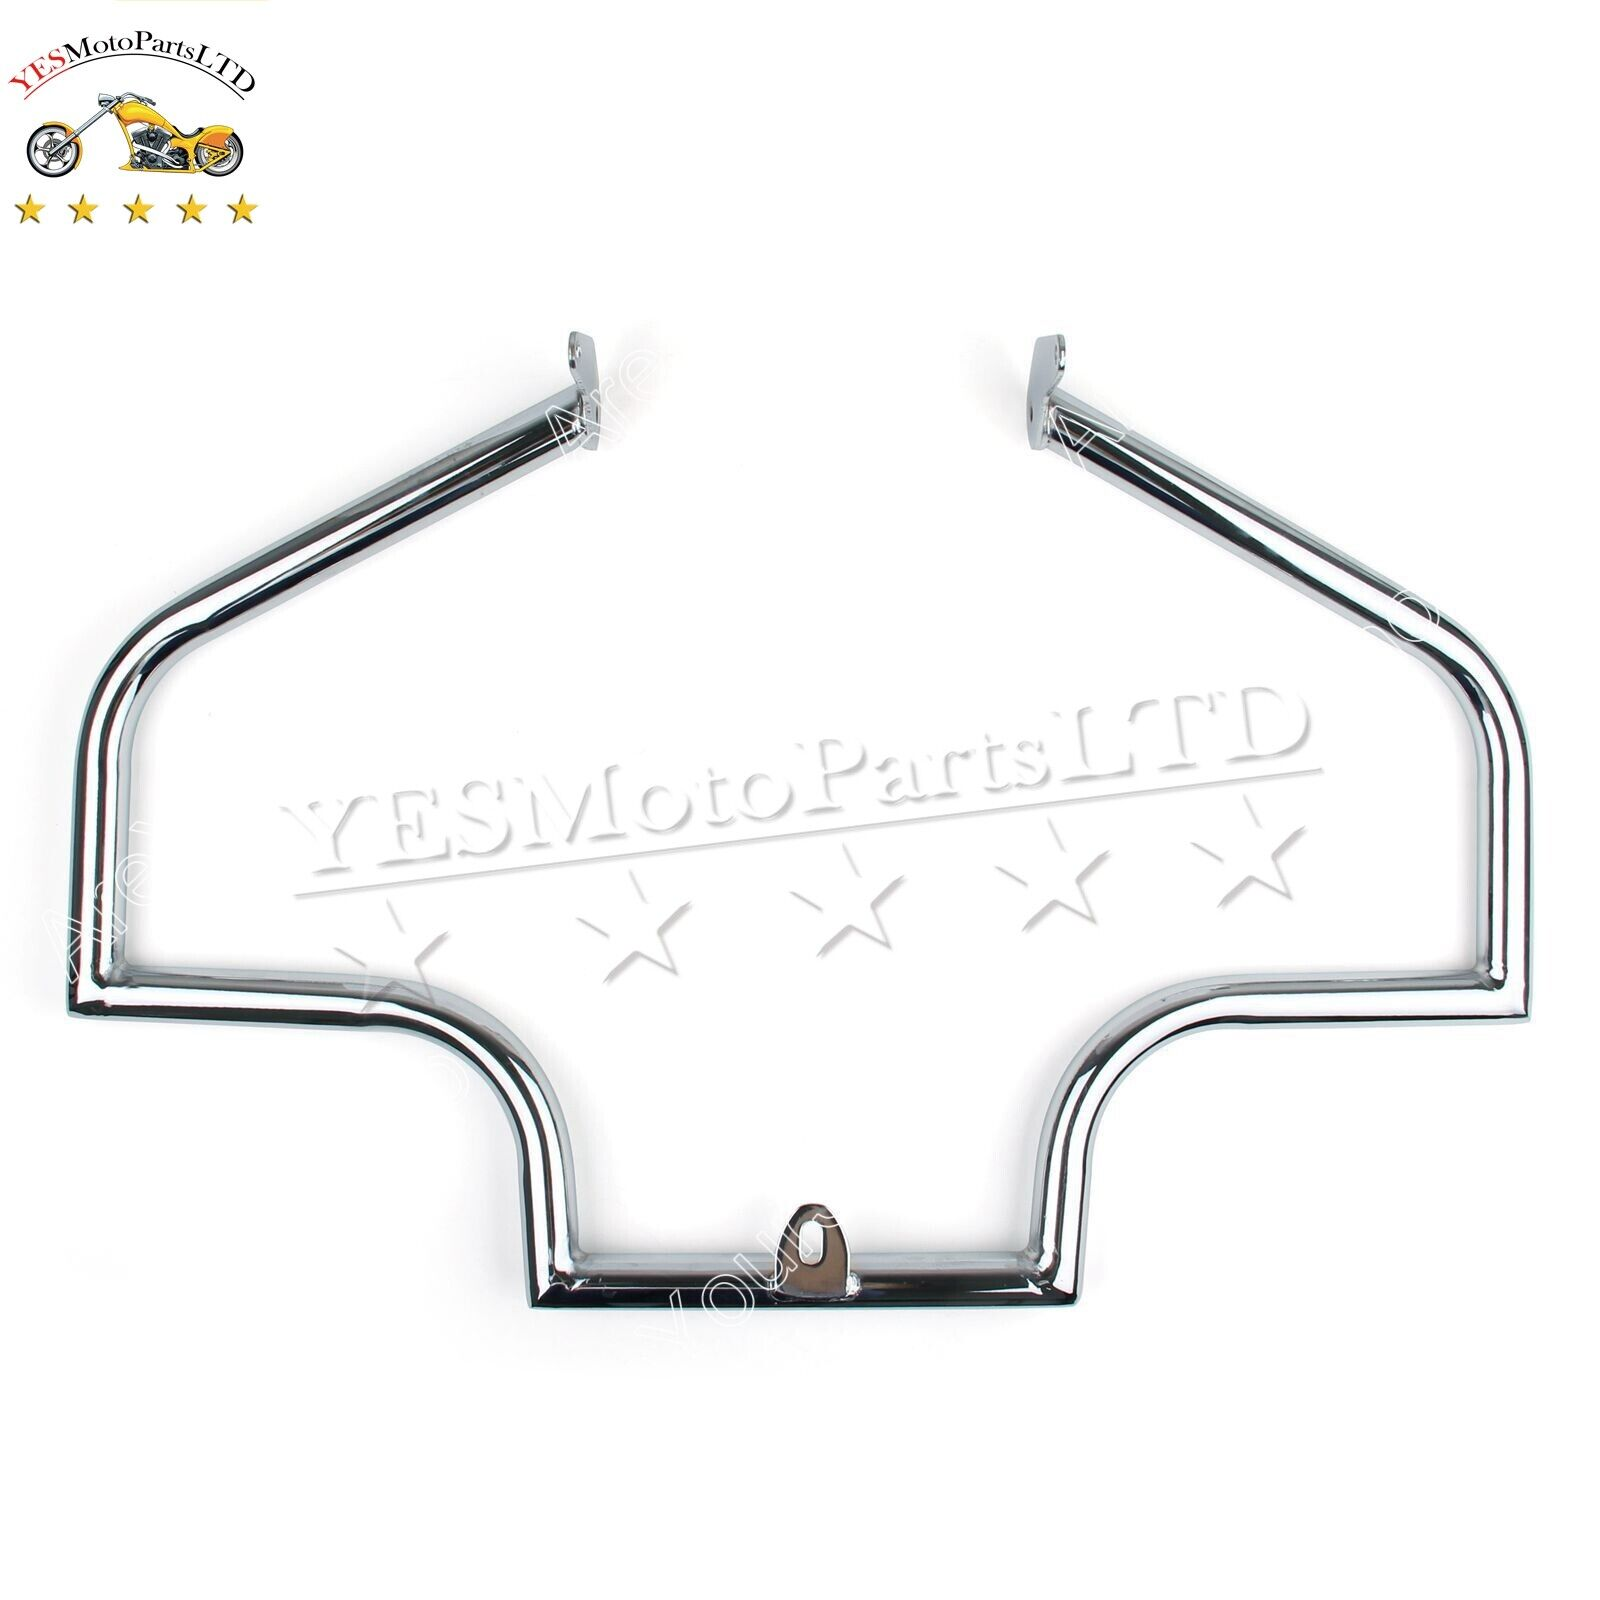 Motorcycle Engine Guard Highway Crash Bar For Harley Flstf